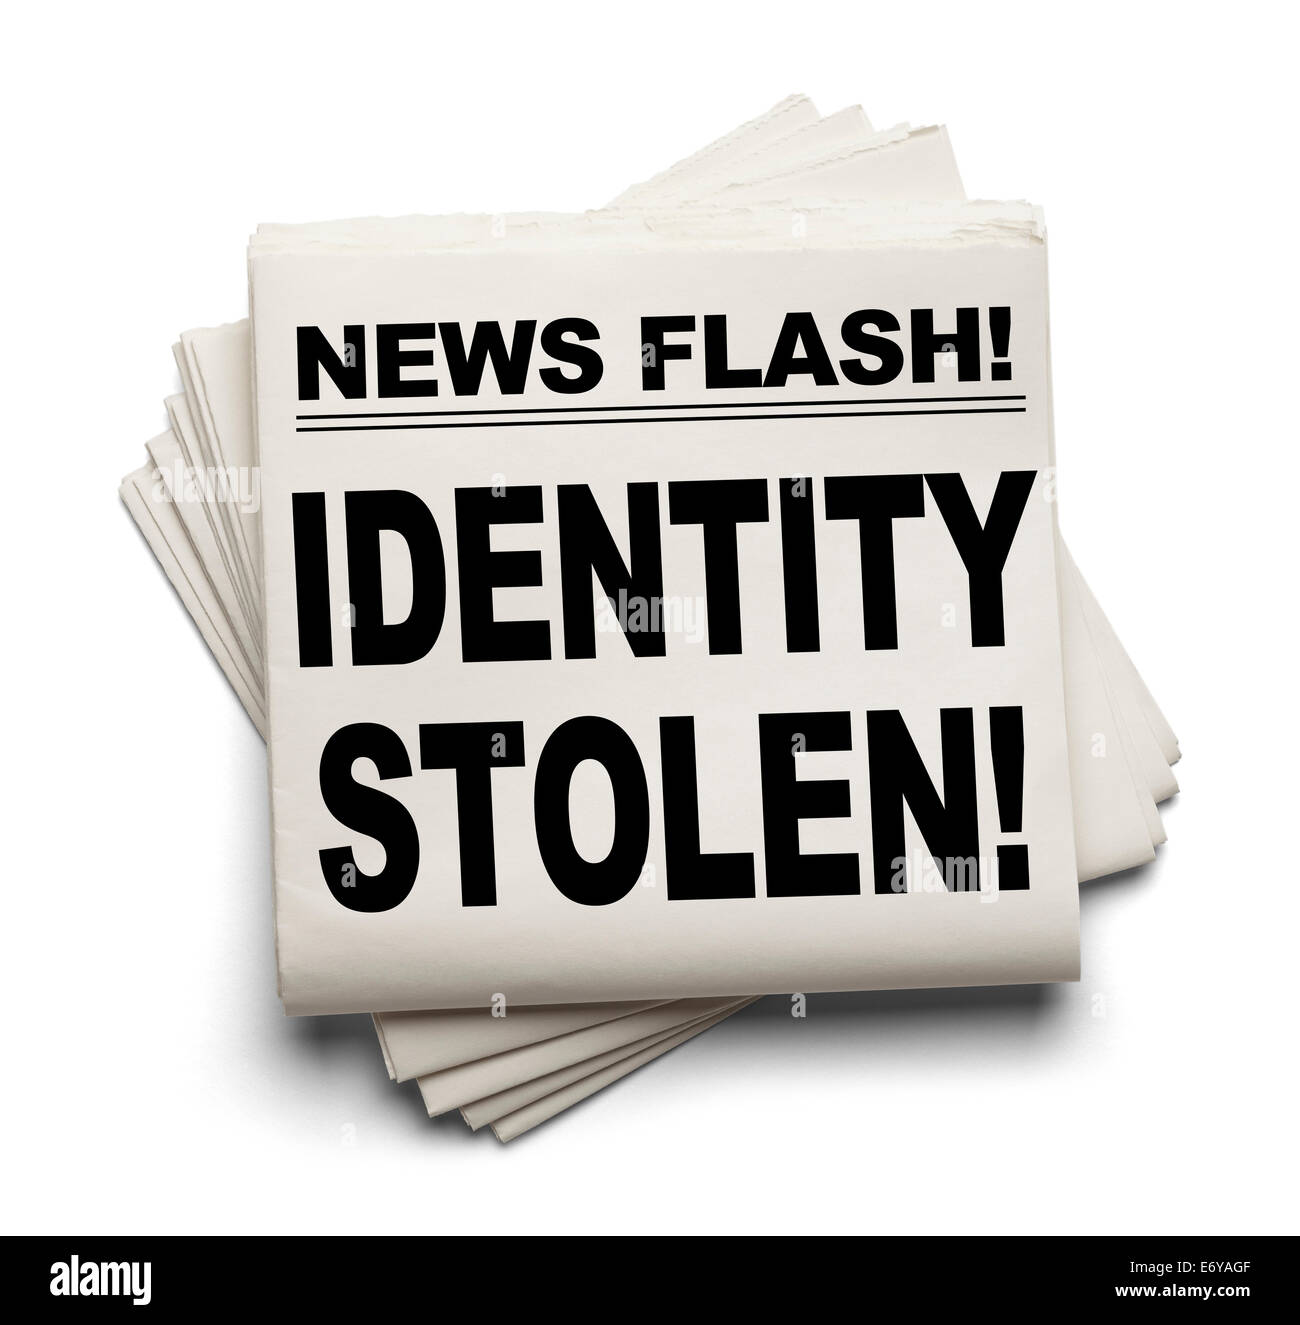 News Flash Identity Stolen News Paper Isolated on White Background. - Stock Image